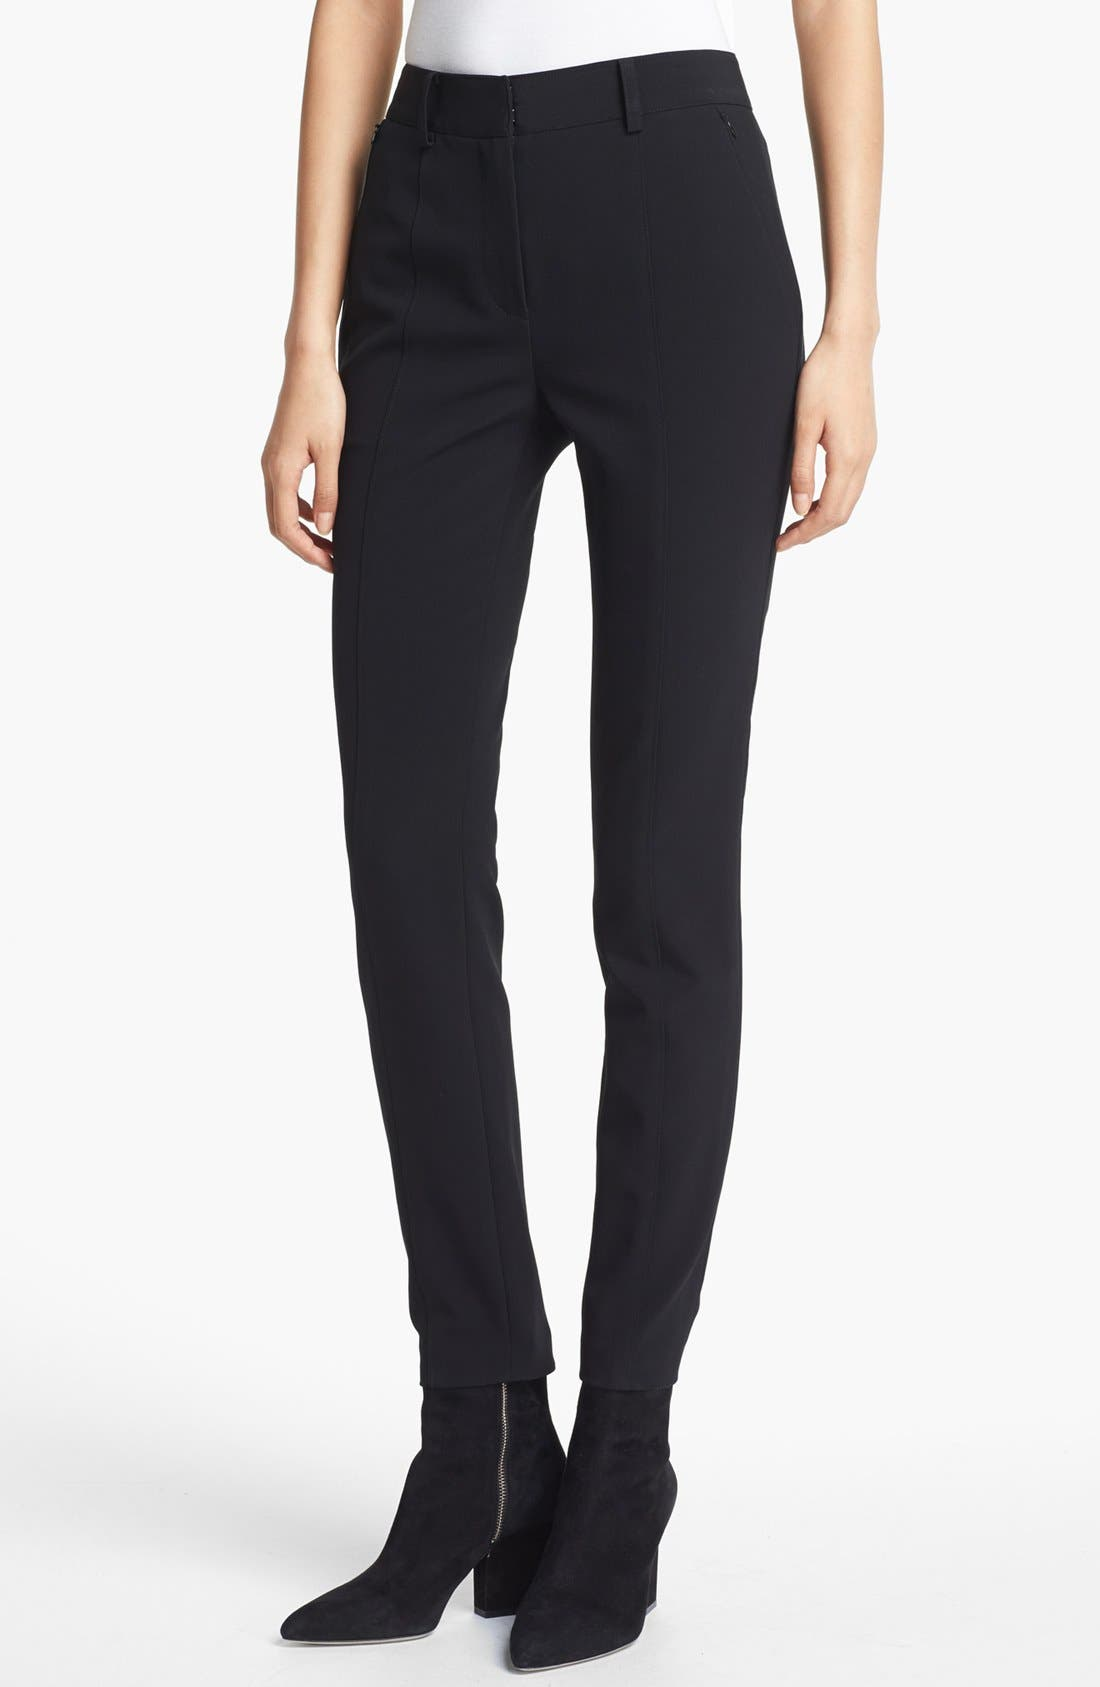 Alternate Image 1 Selected - Alexander Wang Seamed Skinny Pants